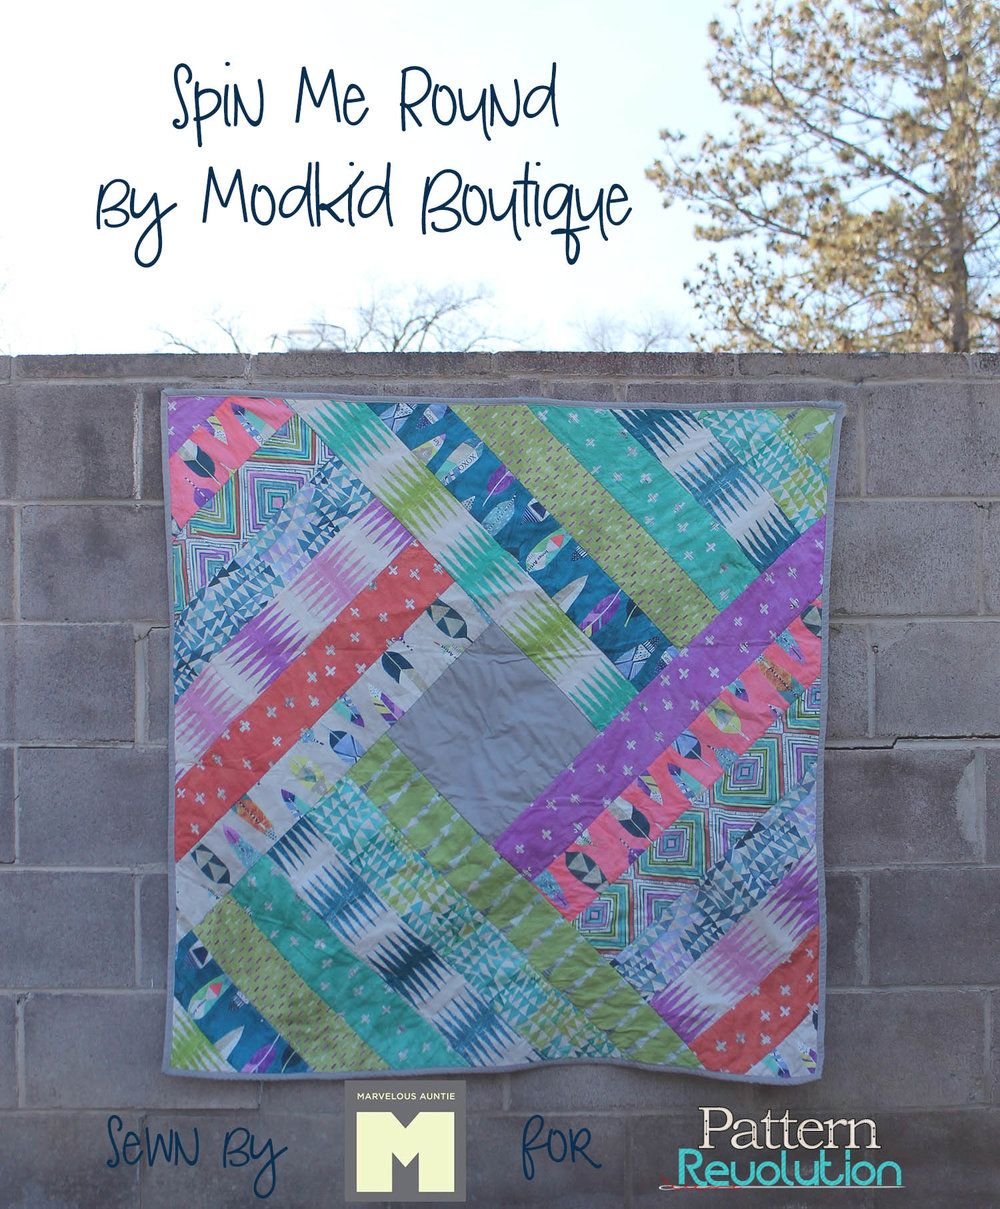 Sew Yourself Some Love Spin Me Round Quilt by Modkid